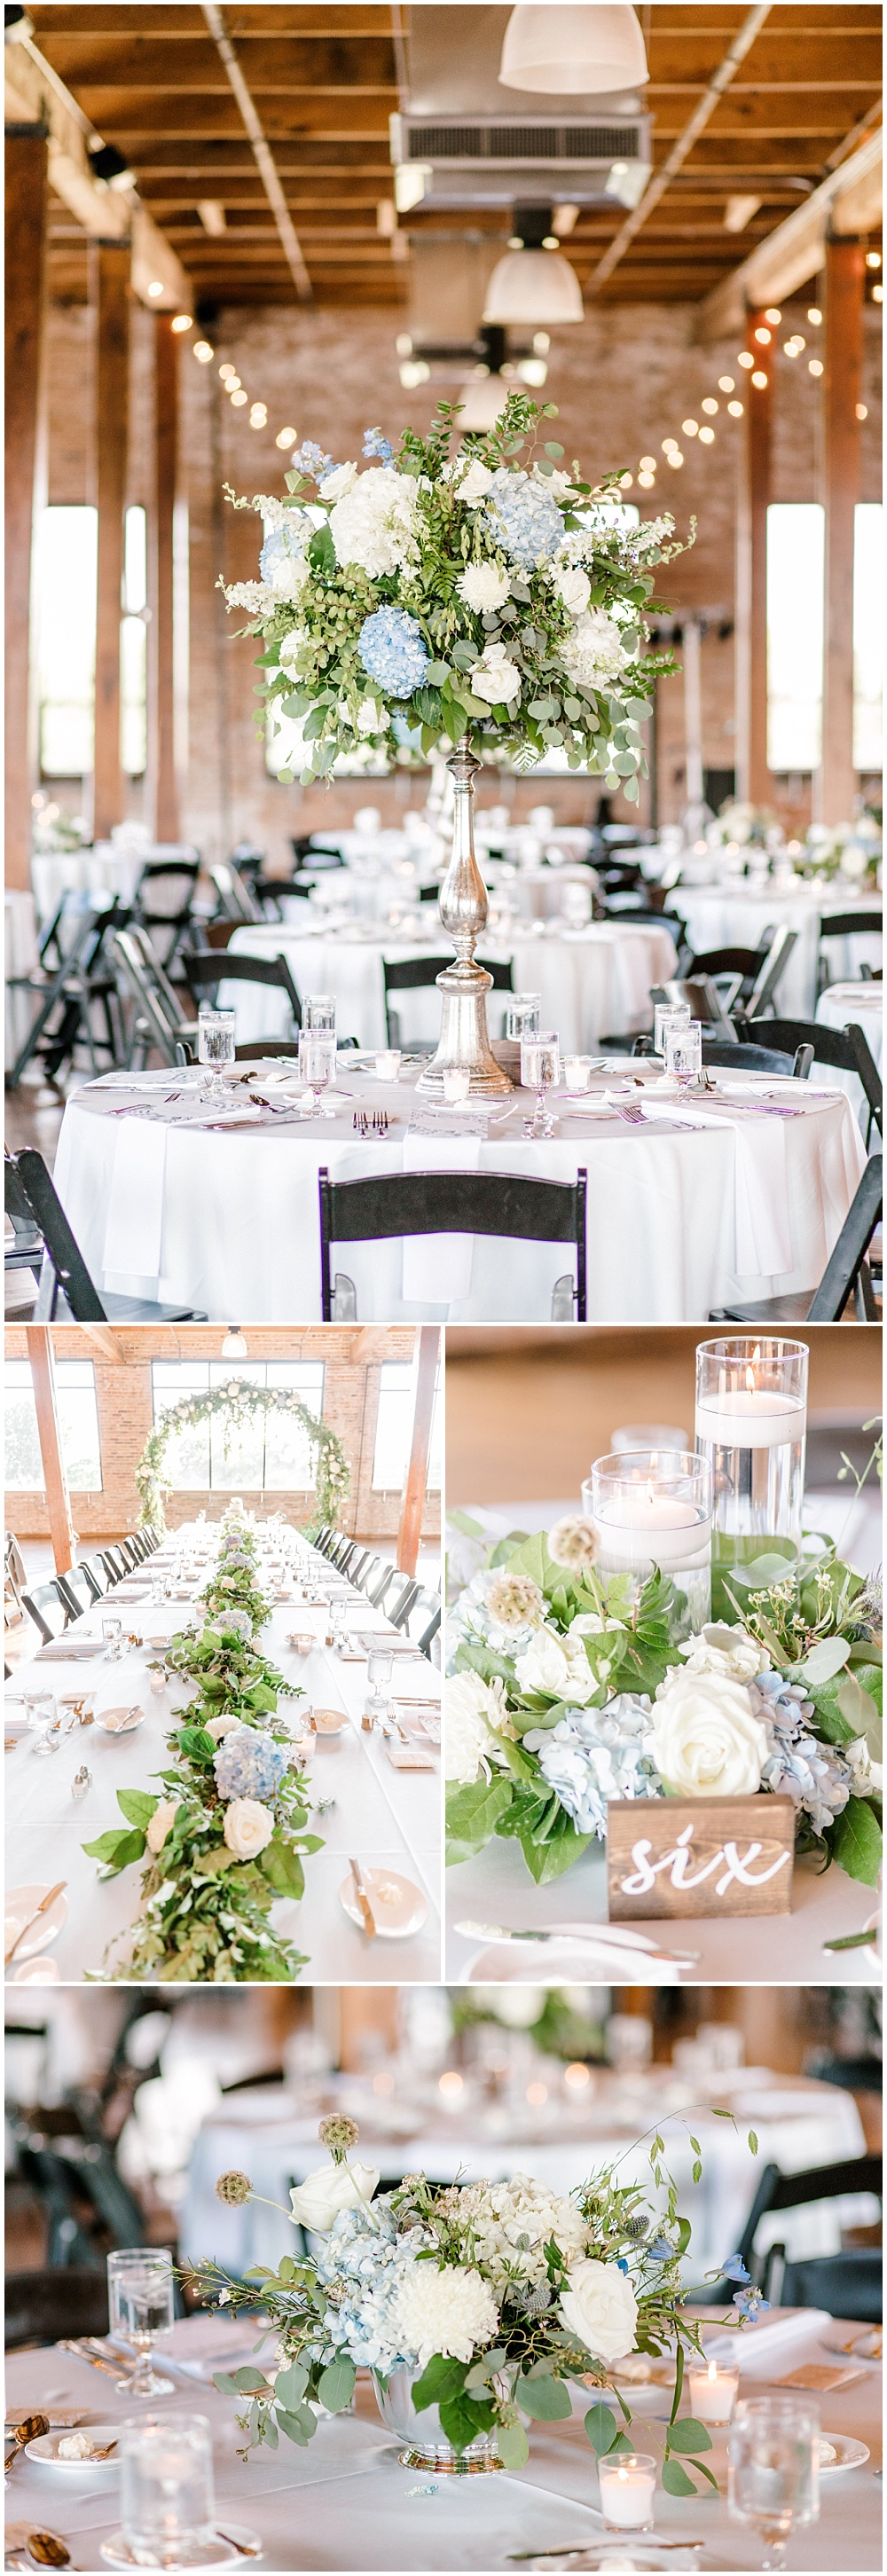 Floral and greenery Head Table arch with greenery cascading down the center; blue and white wedding flowers   NFL Player Nick Martin's rustic chic summer wedding at the Biltwell Event Center